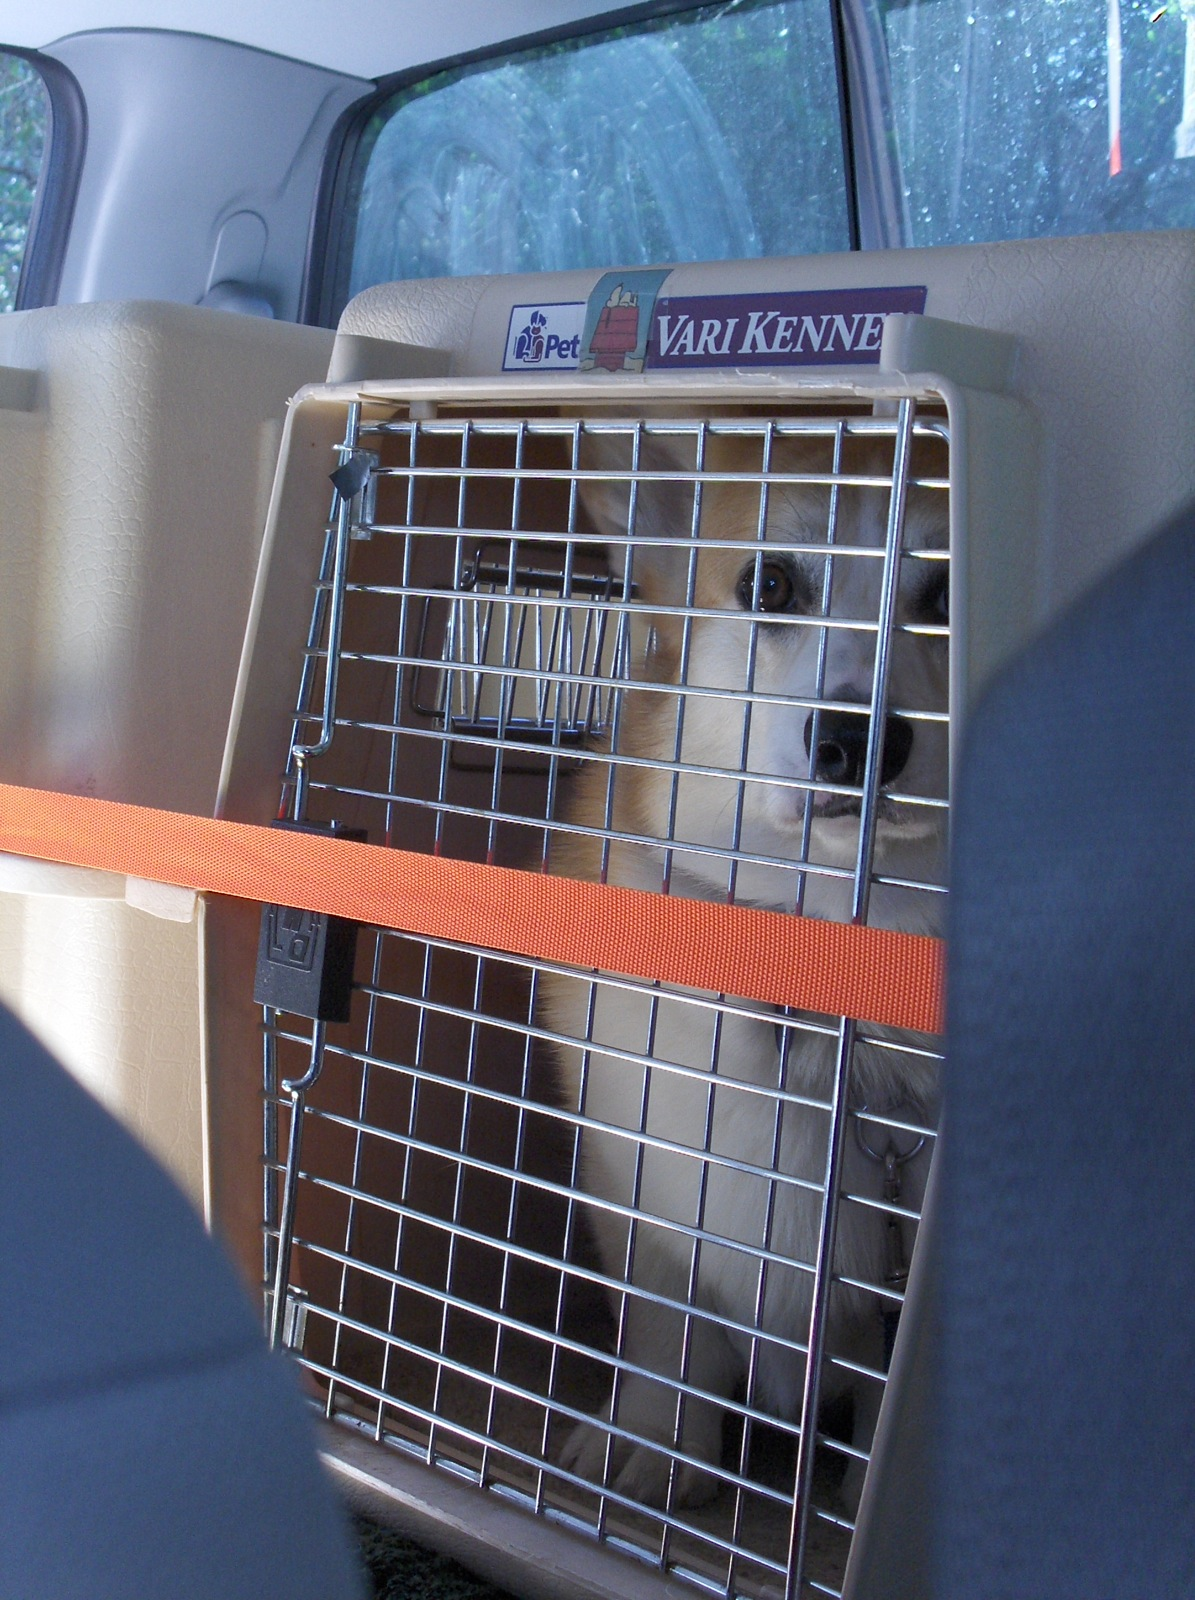 Click image for larger version  Name:HPIM2563 Mac in Vari Kennel crate.jpg Views:63 Size:539.0 KB ID:198286